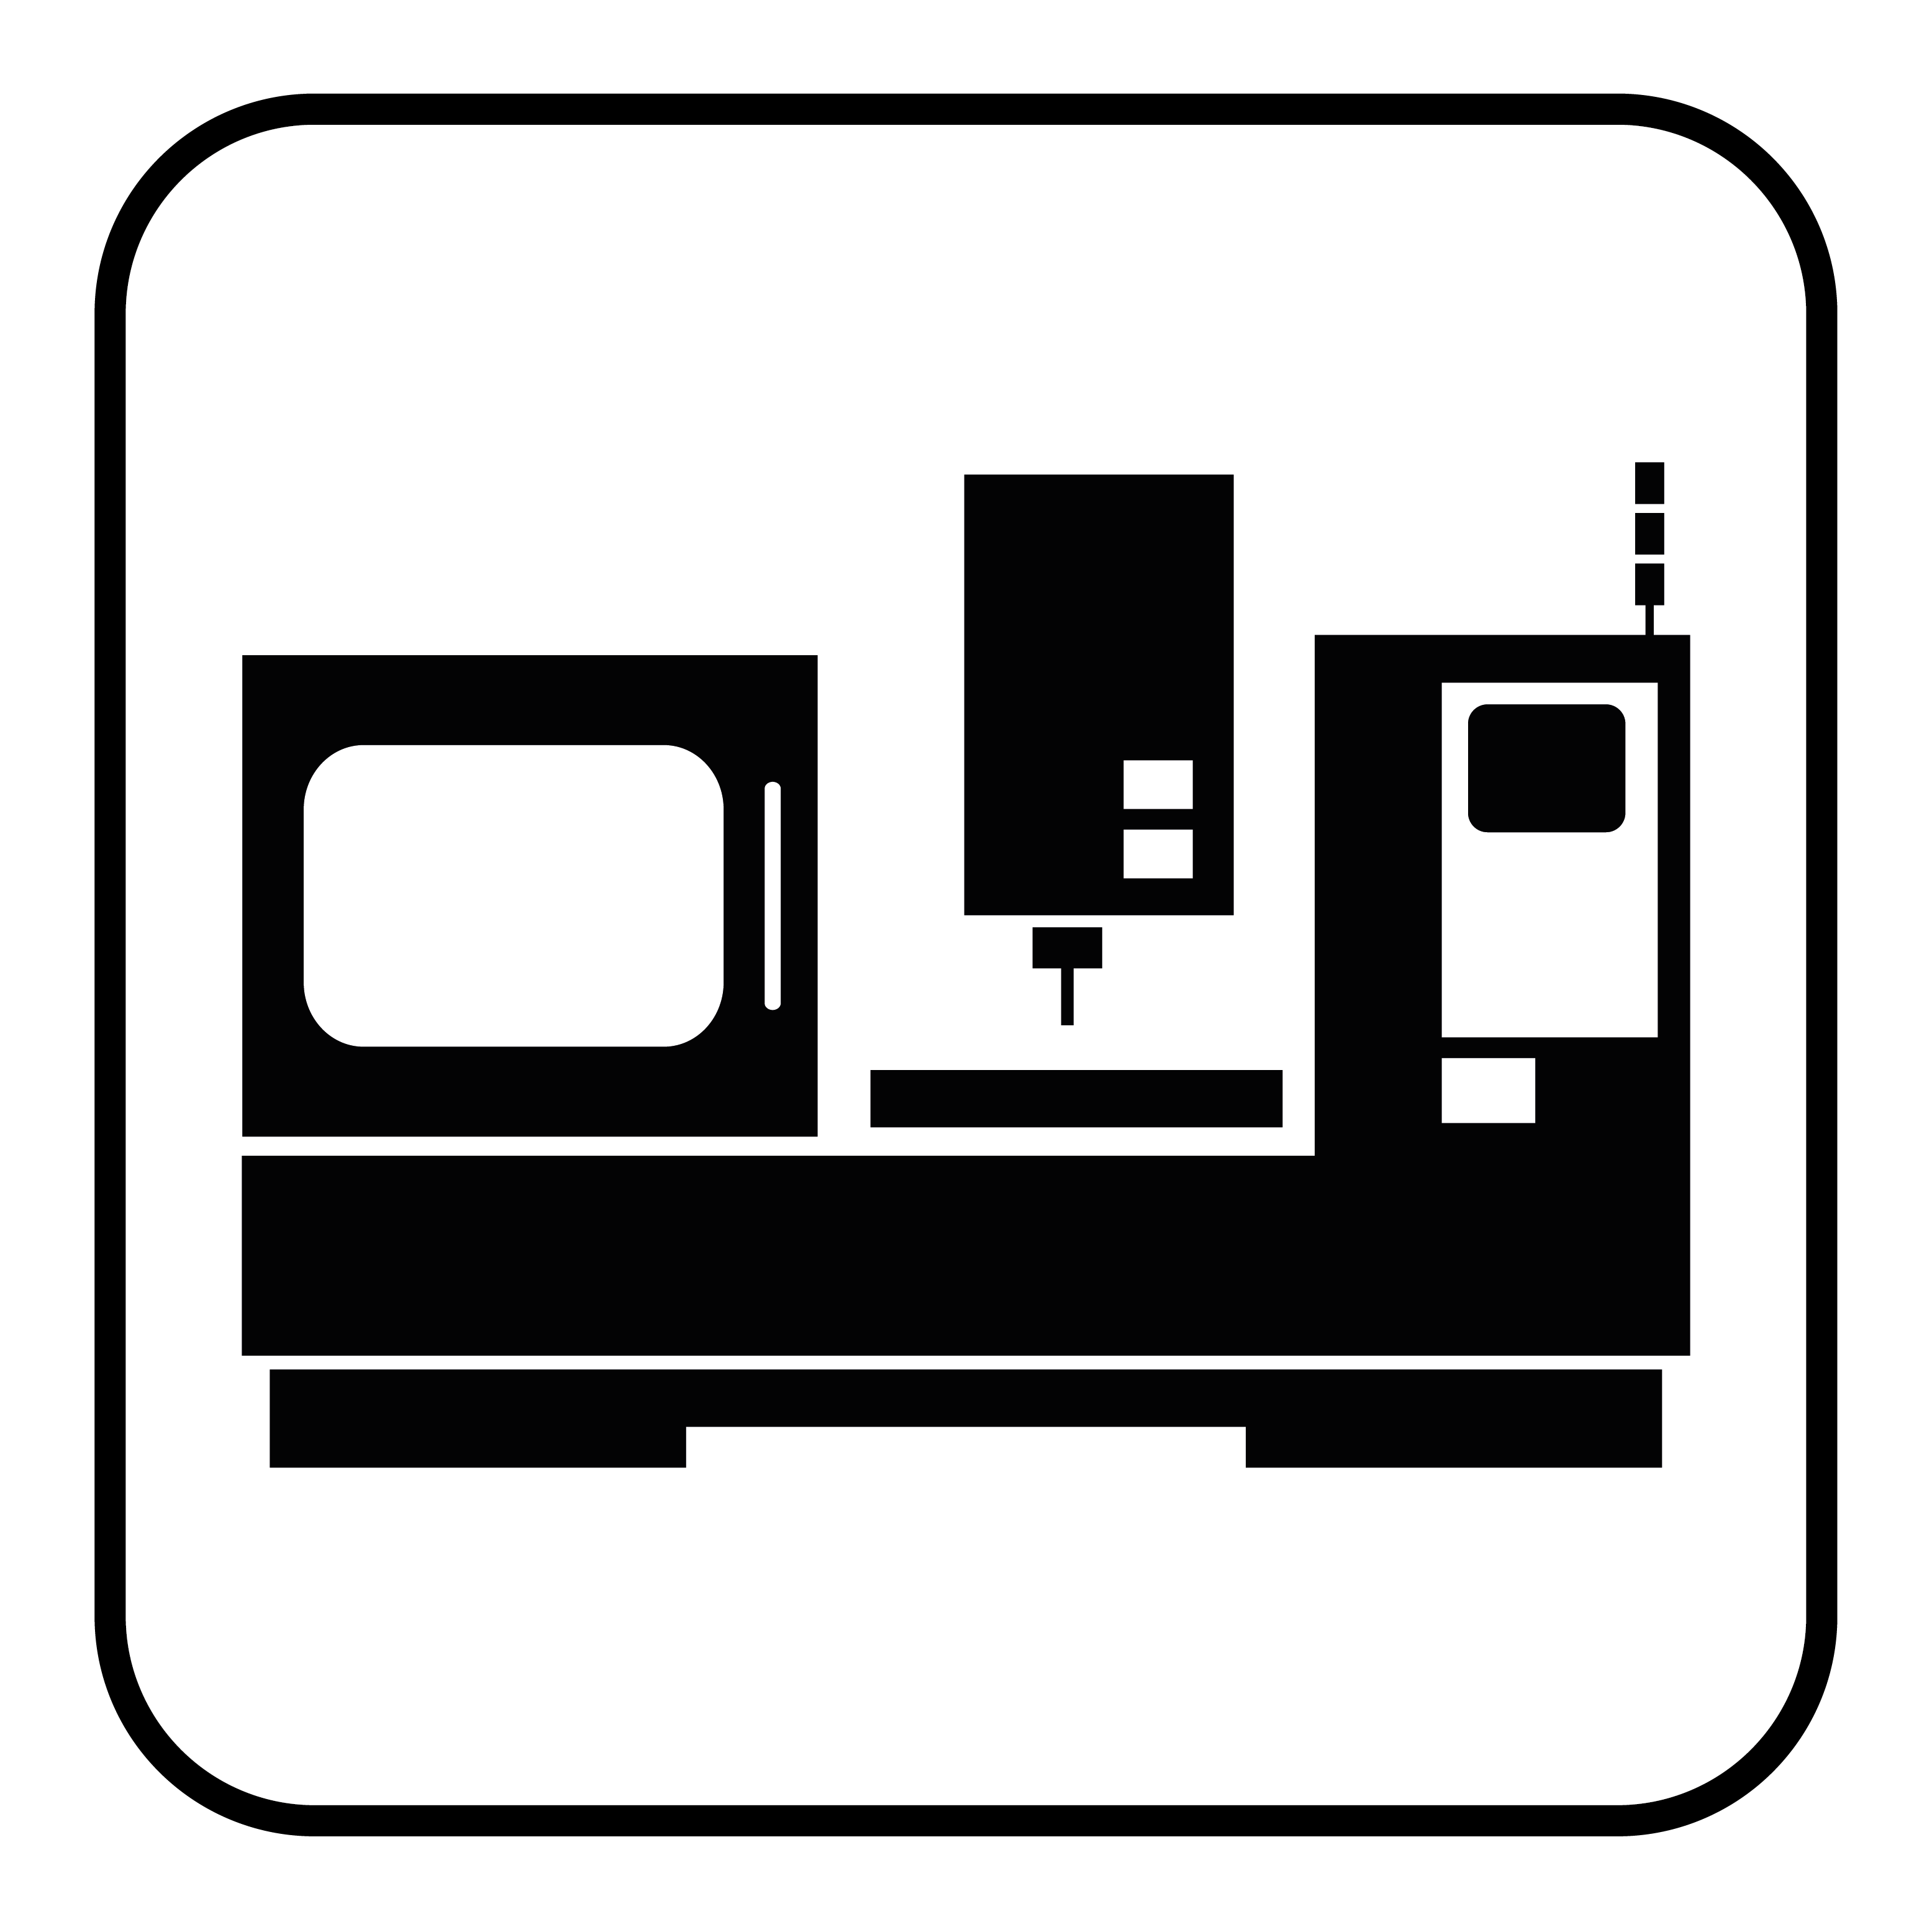 Industrial machinery icon